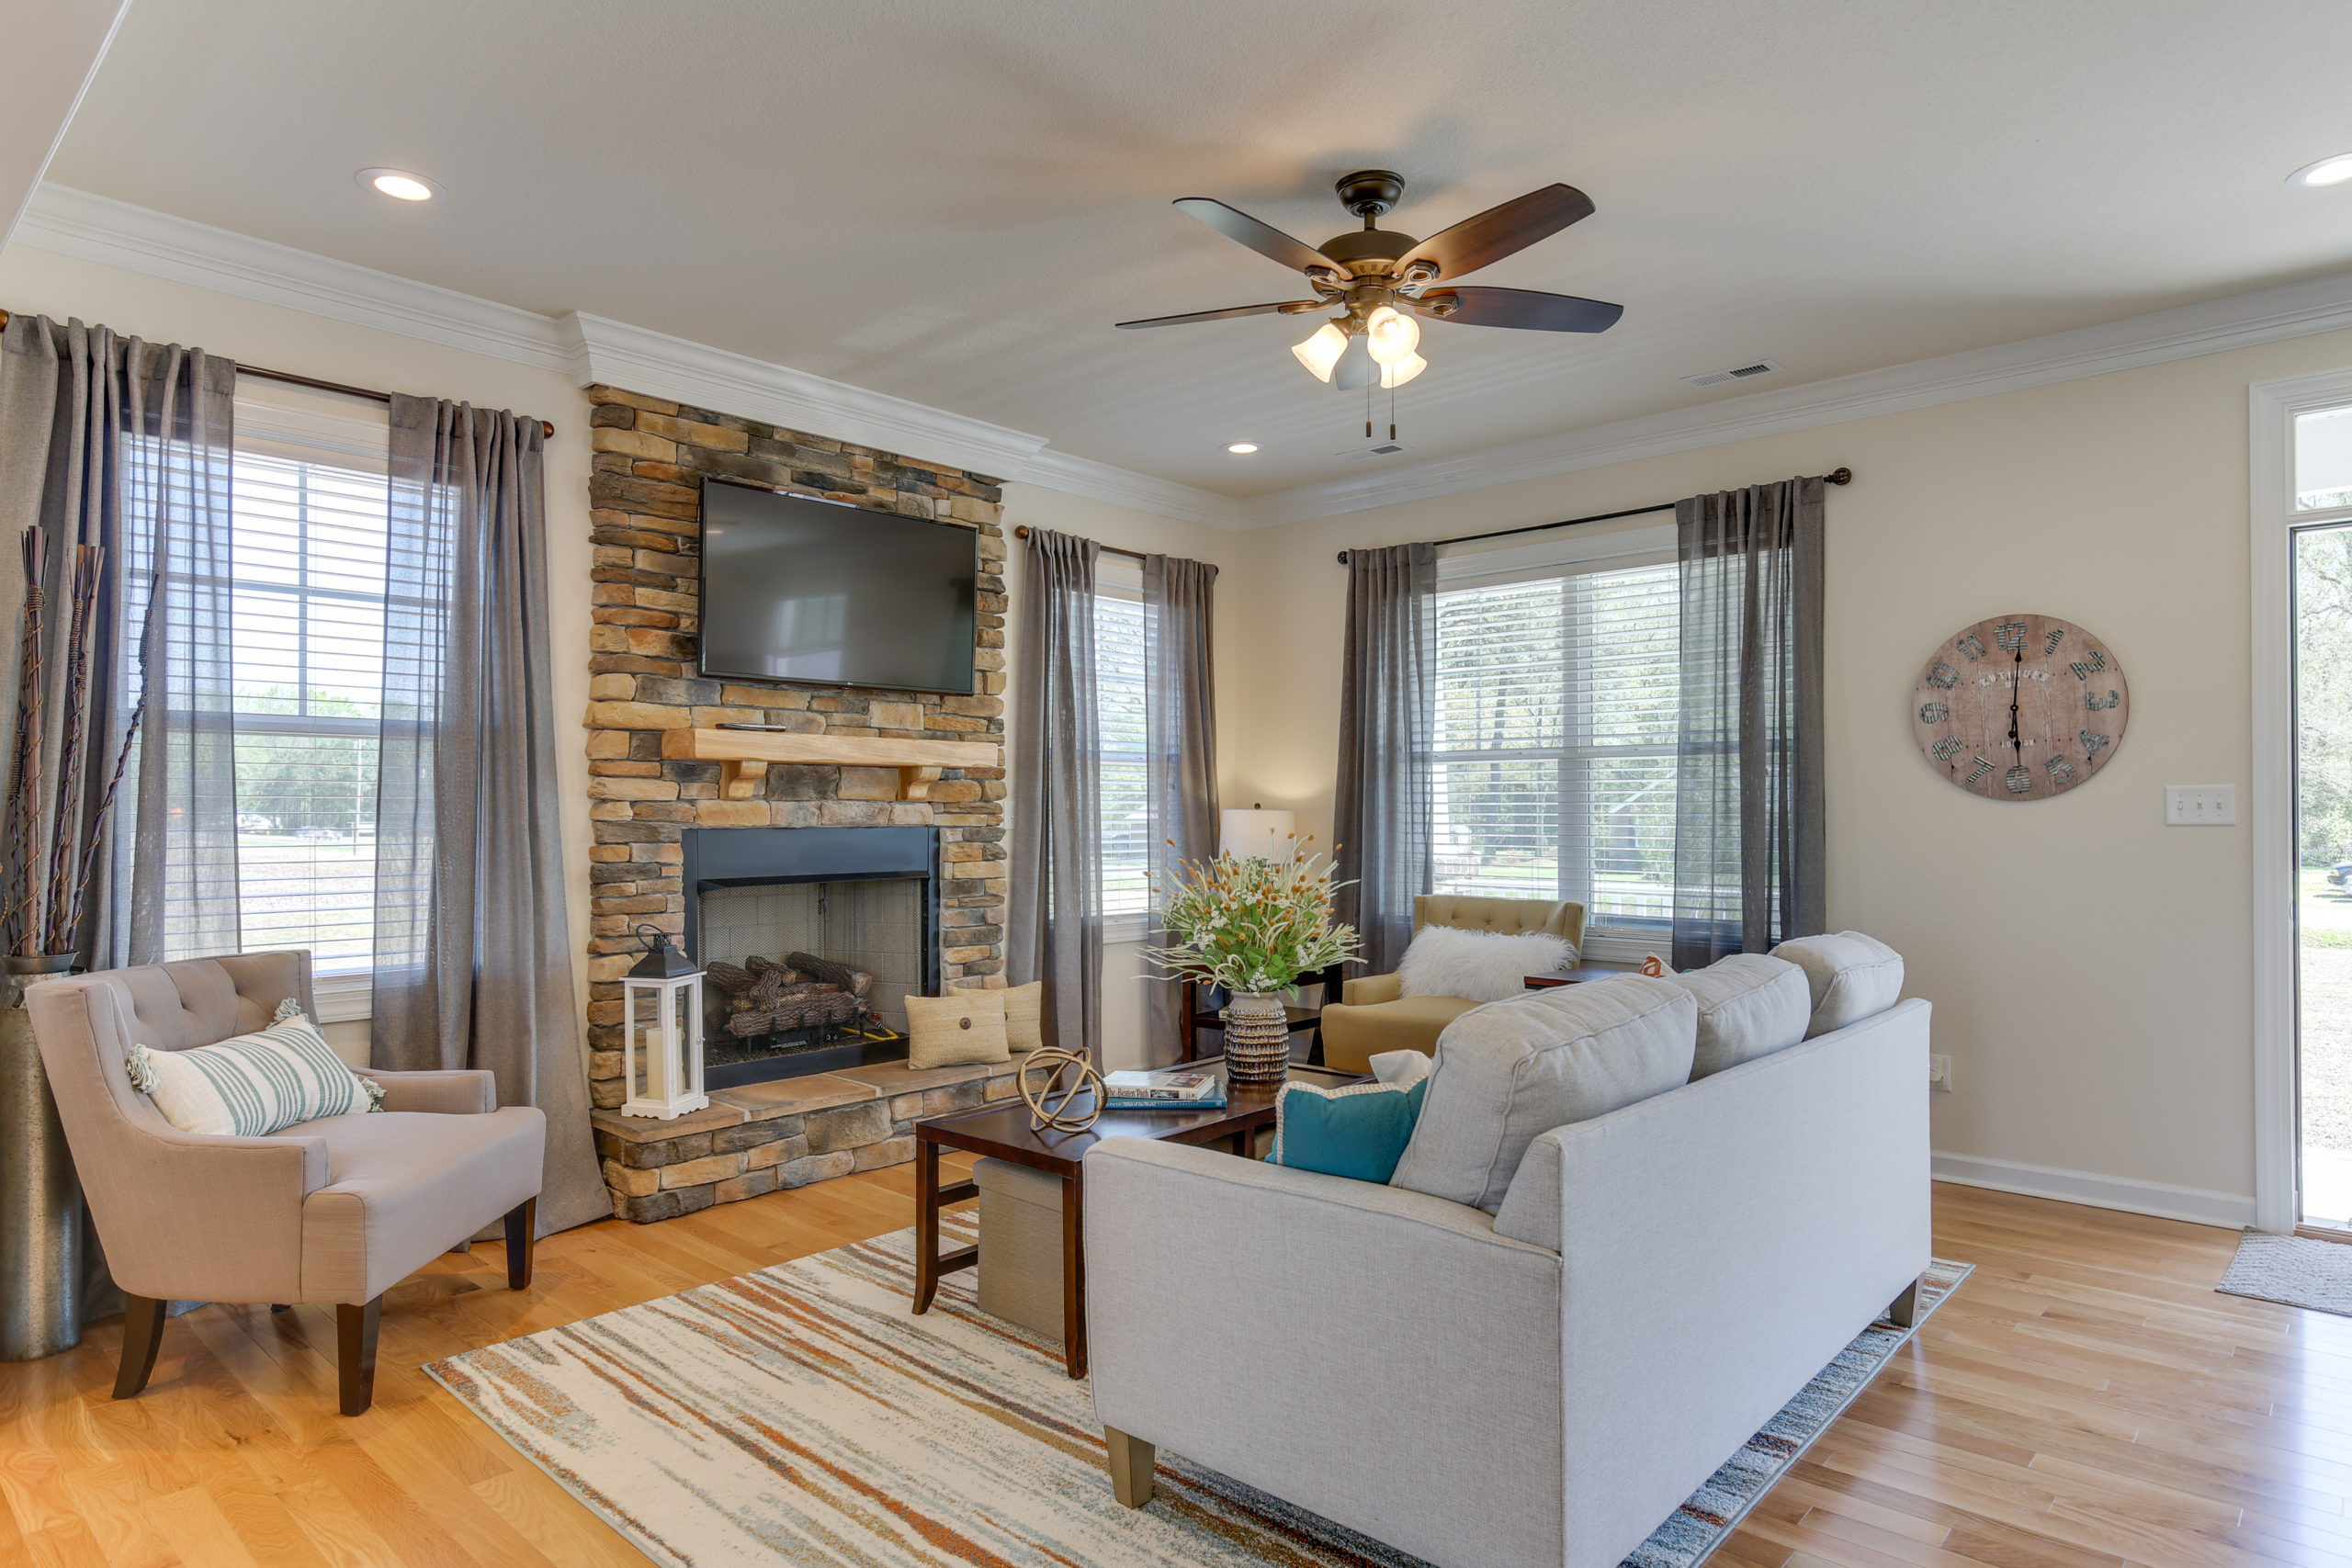 The AB Homes Gilbert Floor Plan Living Room On The Blog Not Interested In A Bidding War? Consider A Custom-built Home Instead.